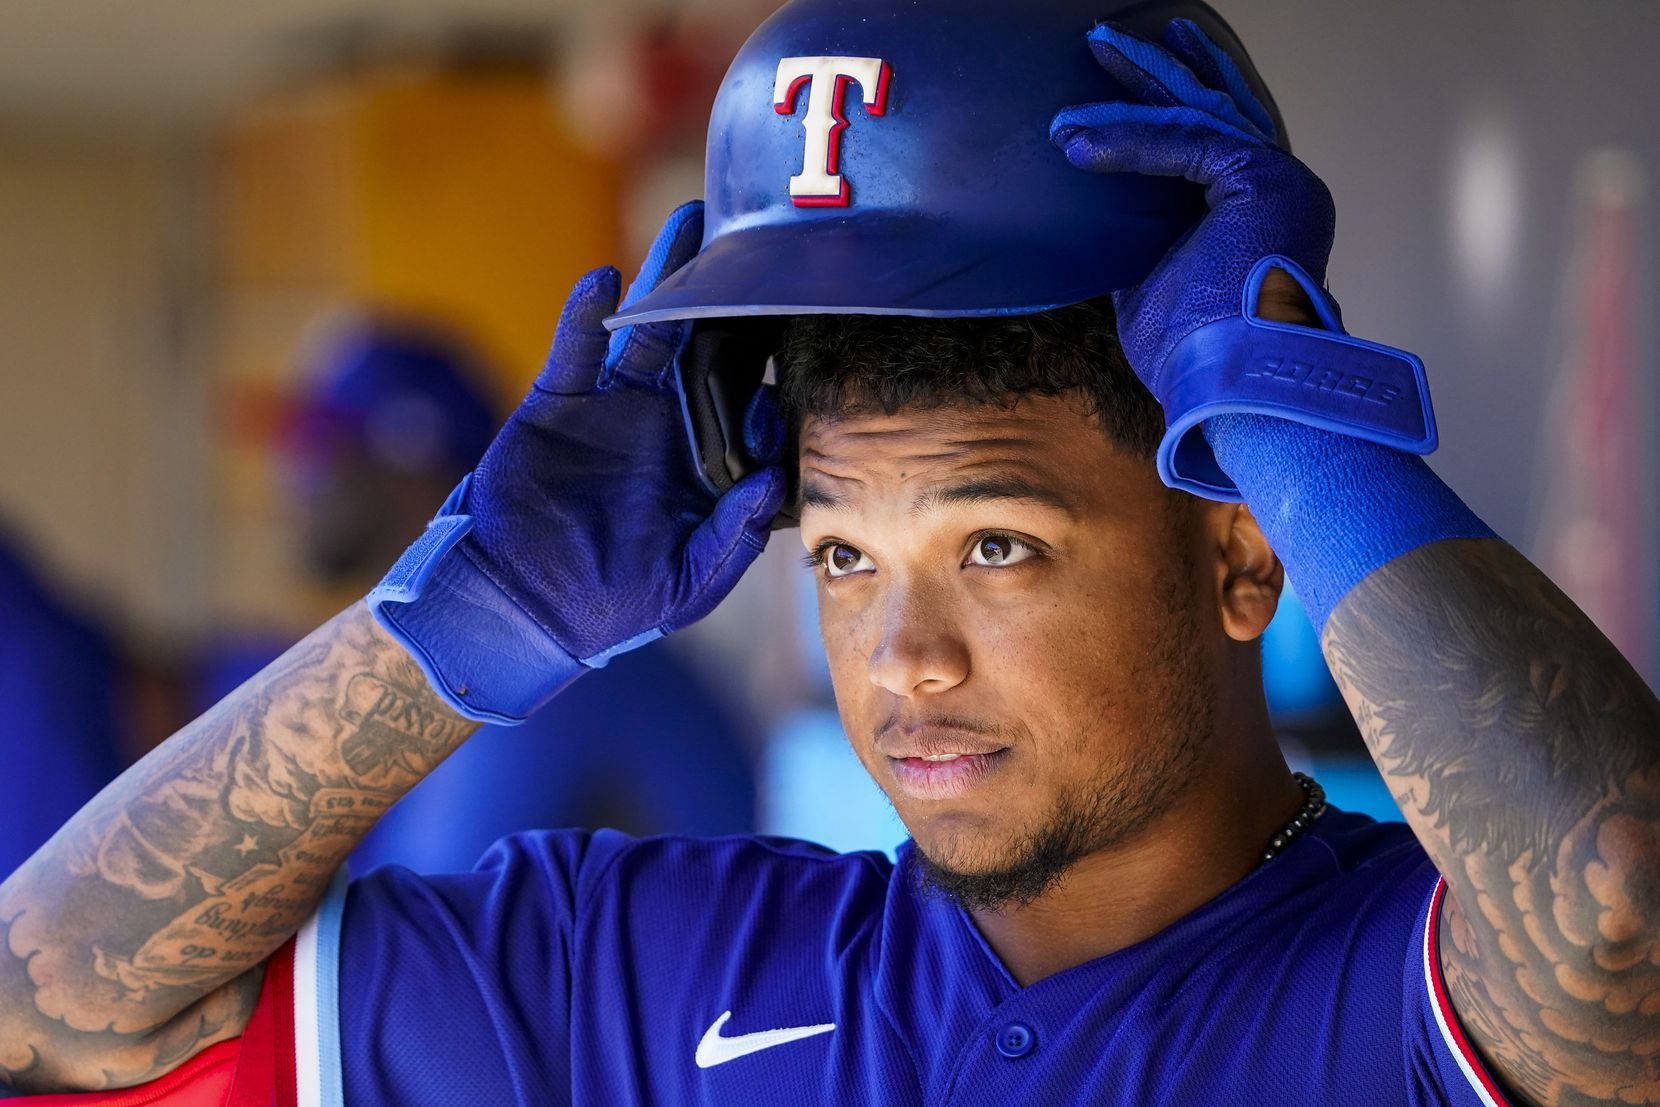 Texas Rangers outfielder Willie Calhoun puts on his batting helmet in the dugout before a spring training game against the Colorado Rockies at Salt River Fields at Talking Stick on Wednesday, Feb. 26, 2020, in Scottsdale, Ariz.